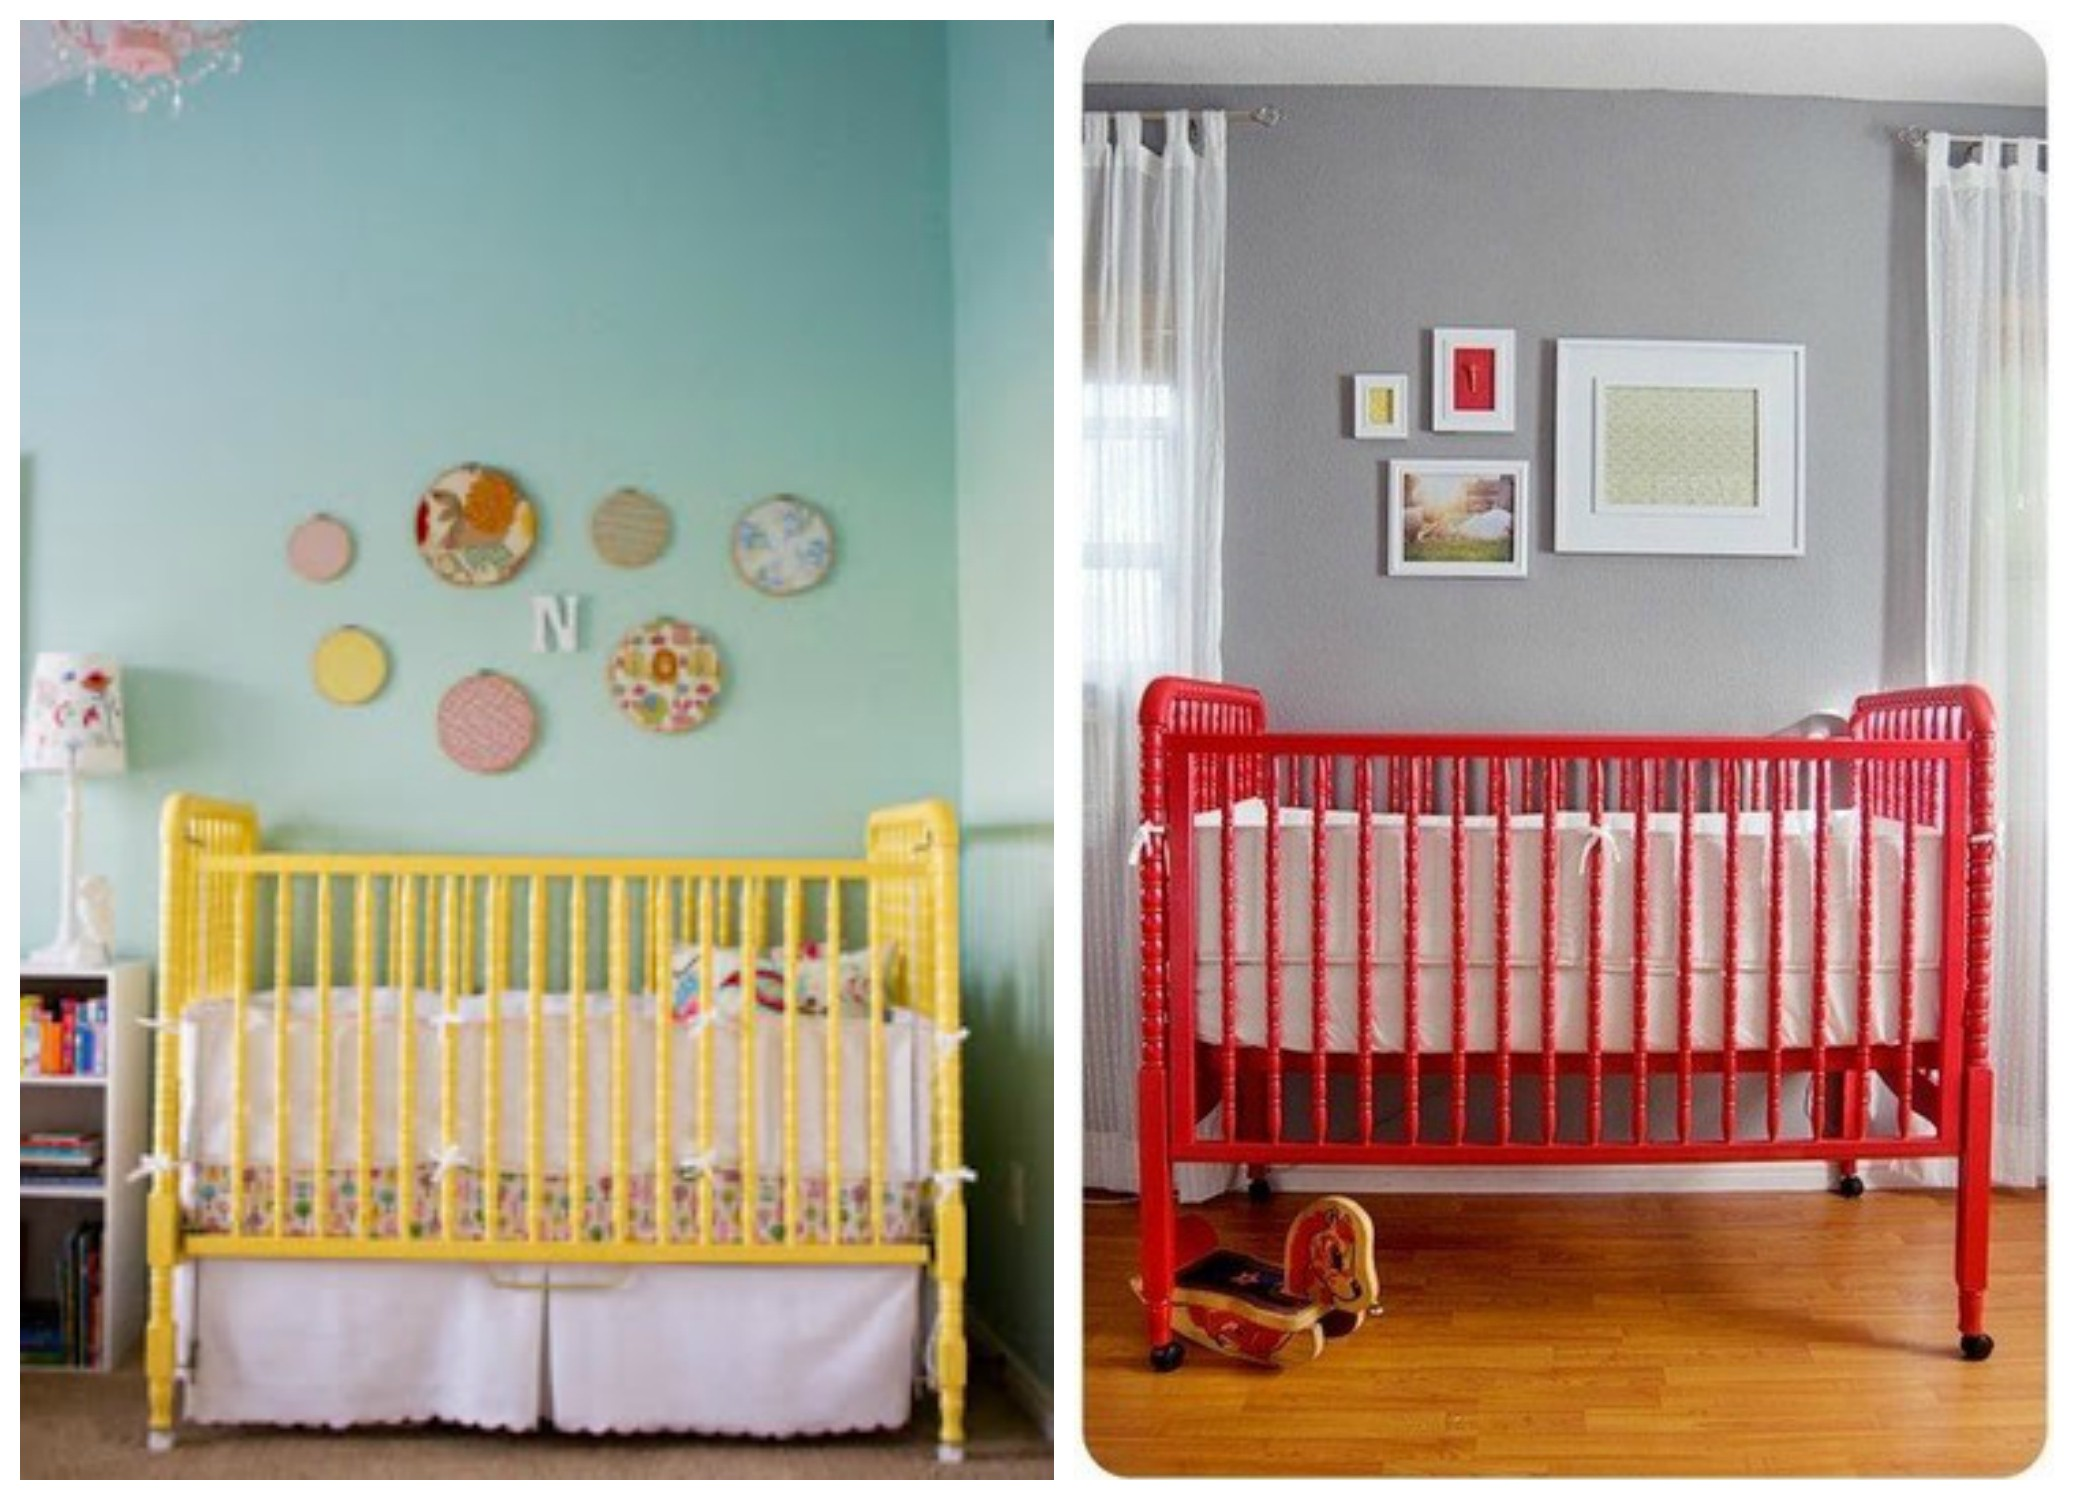 Baby Mod Crib Red And Yellow Soft Mattress And White Metal Furniture Kid